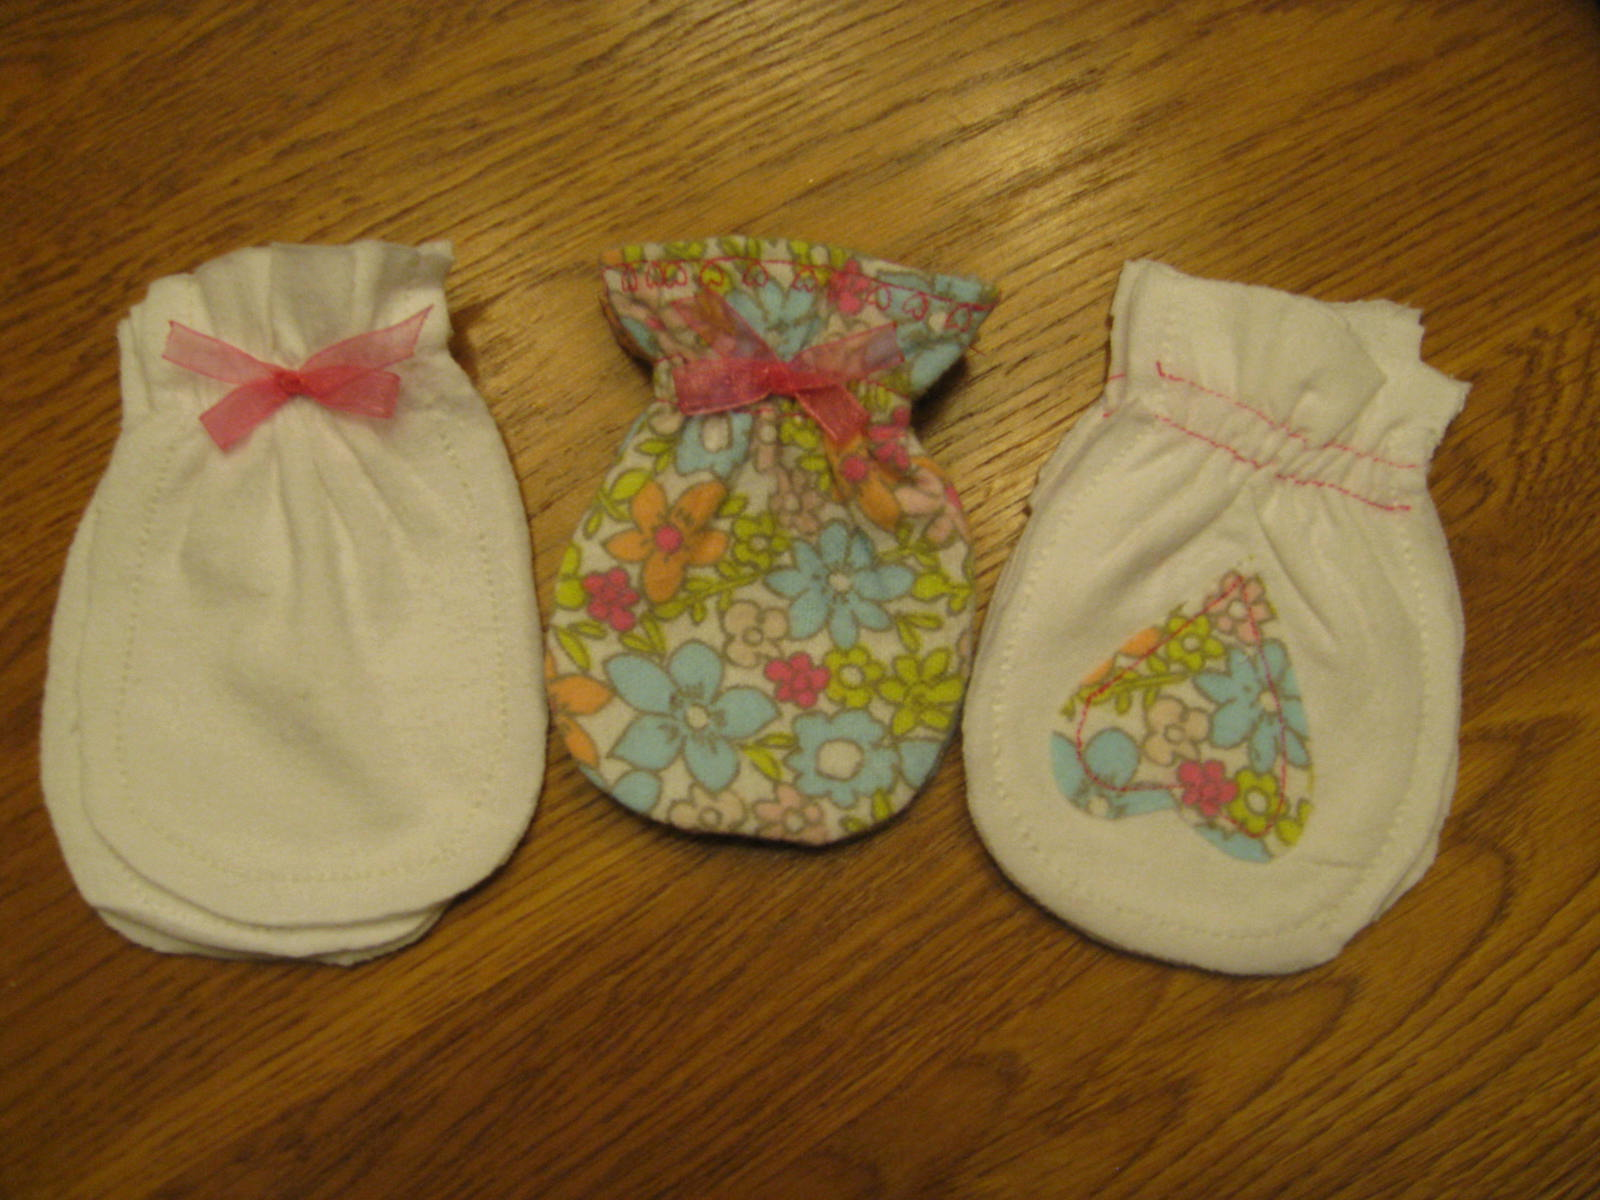 No Scratch Hand Covers For Baby I Bet I Can Make That